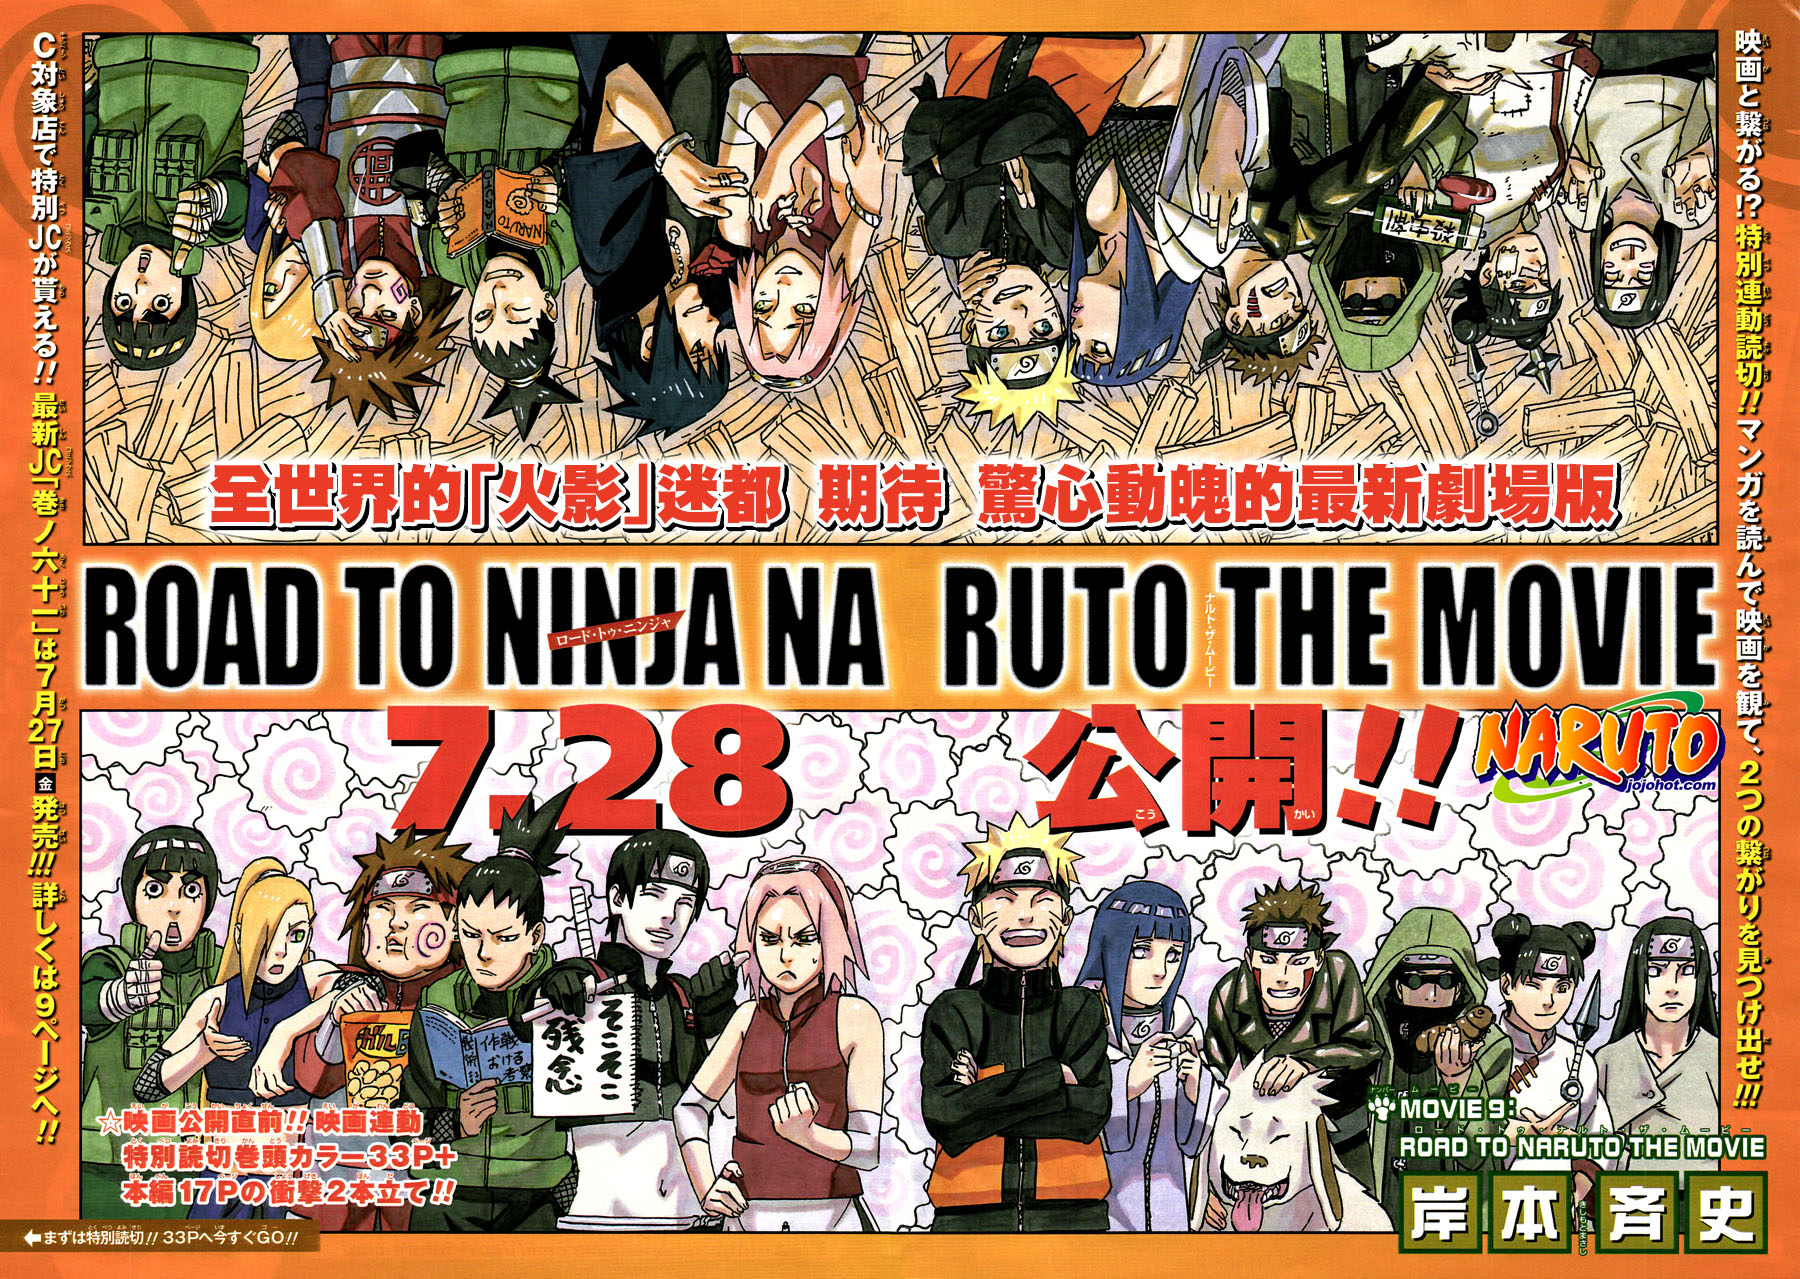 MOVIE 9『ROAD TO NARUTO THE MOVIE』